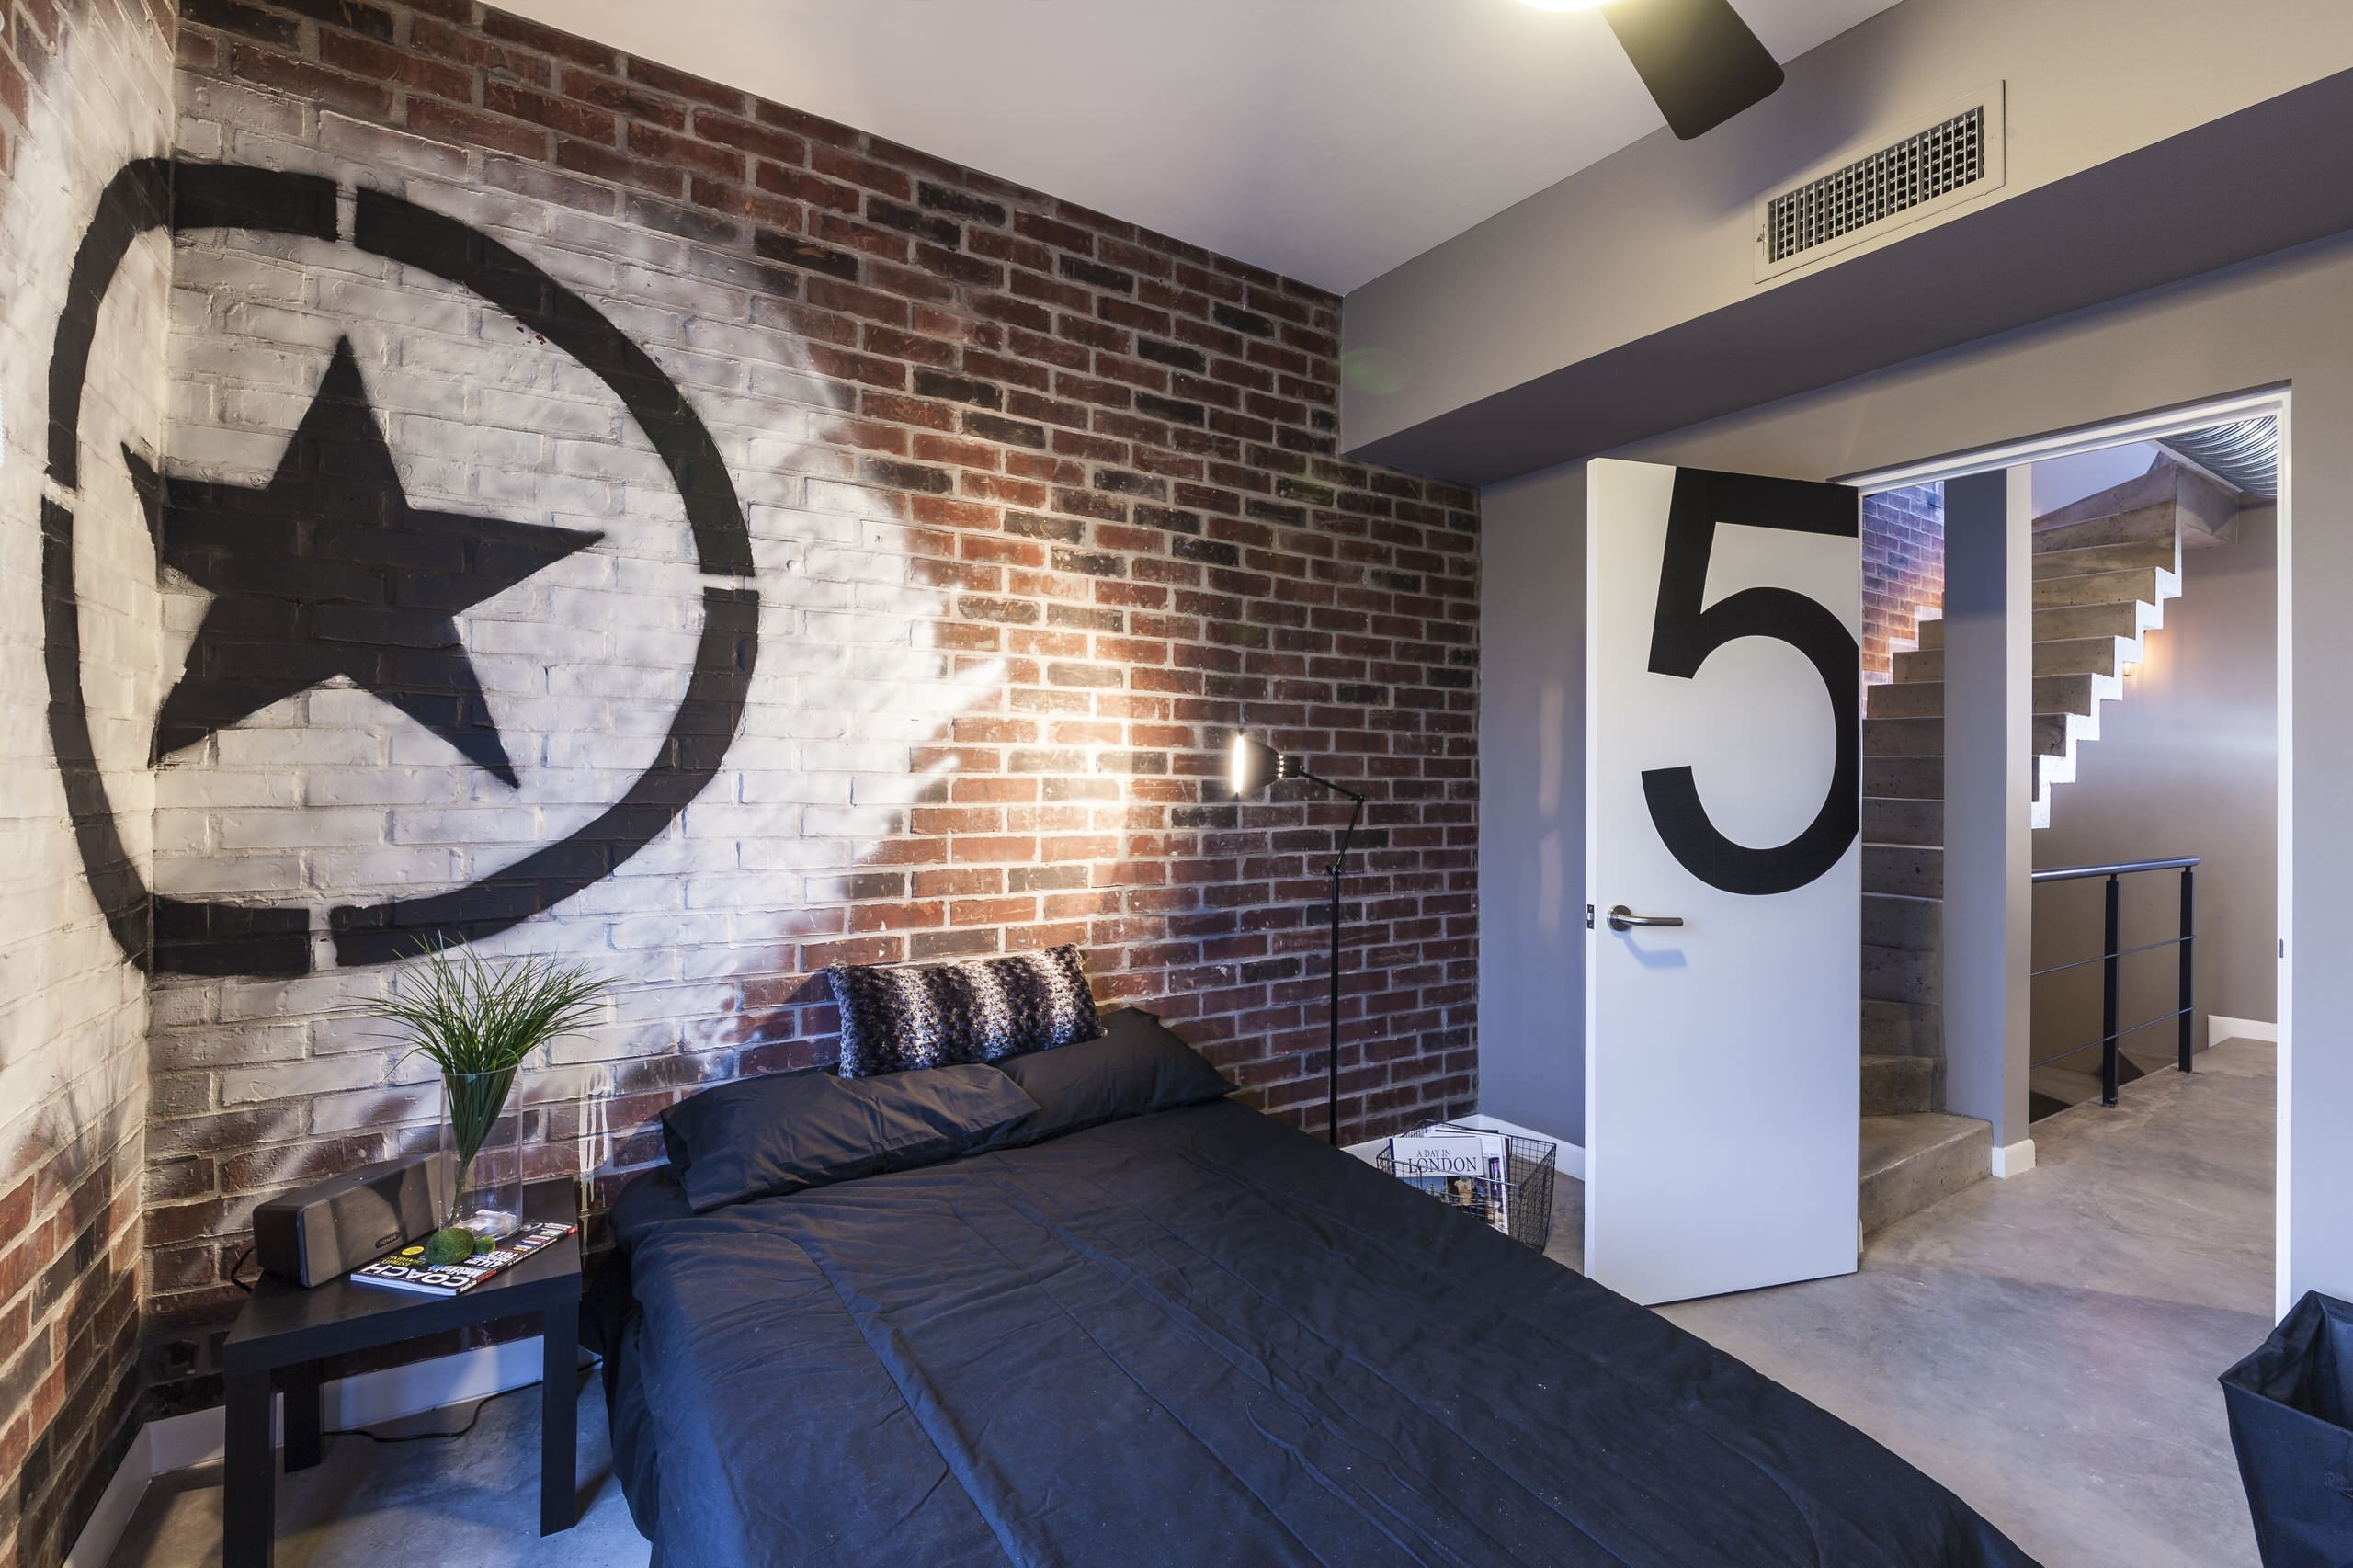 Industrial Style Bedroom With White Artwork On Exposed Brick